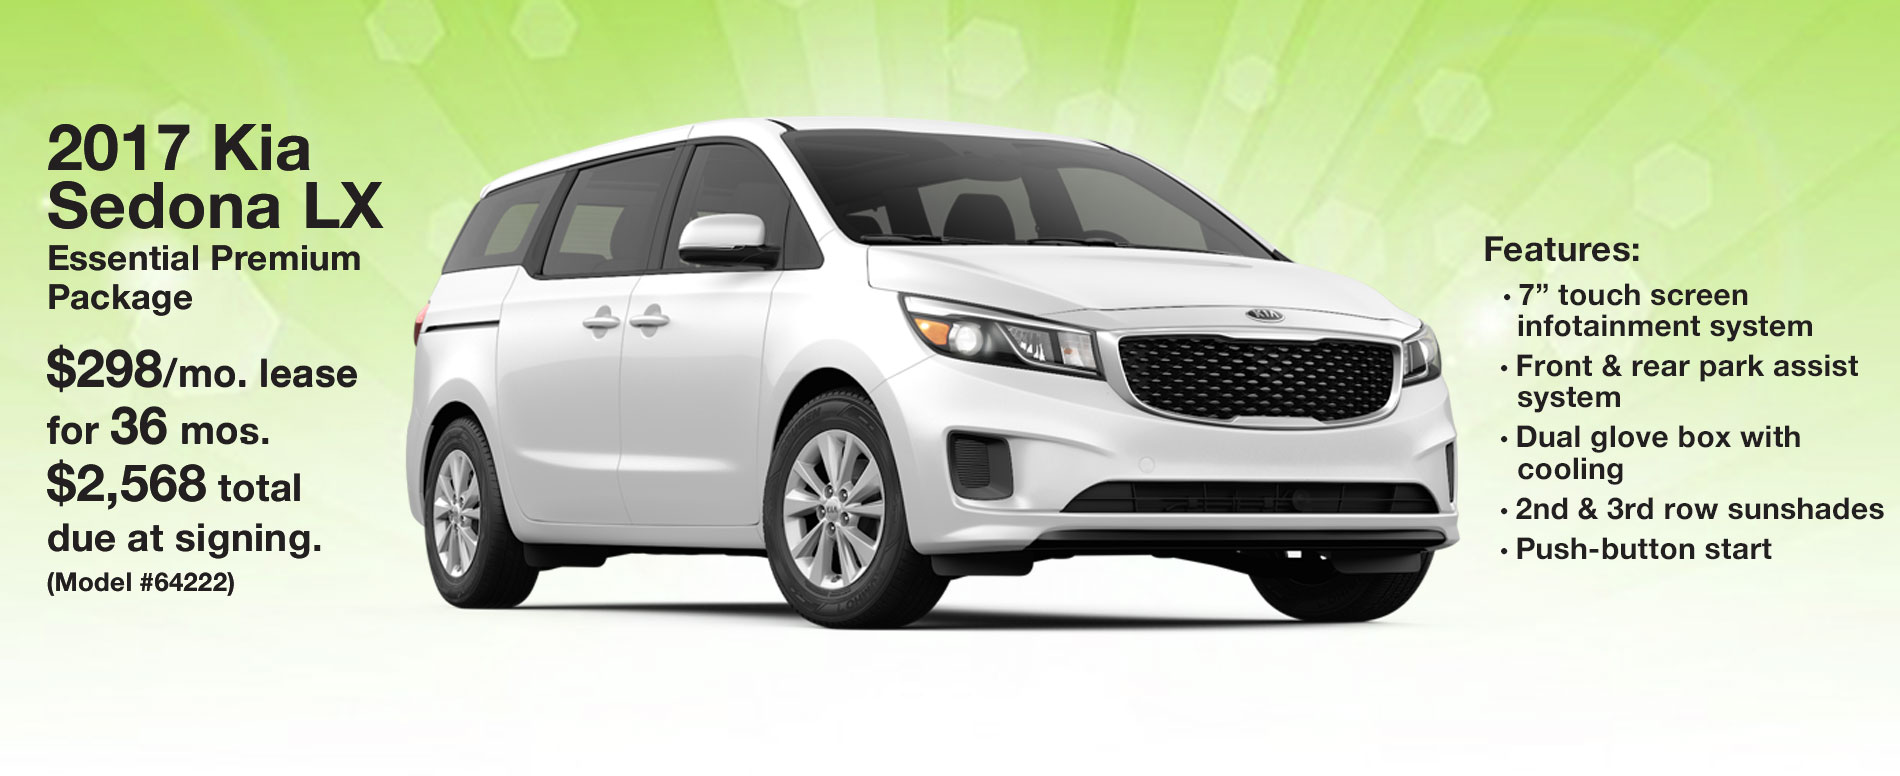 2017 Kia Sedona LX Lease $299 per month for 36 months with $1,999 due at signing